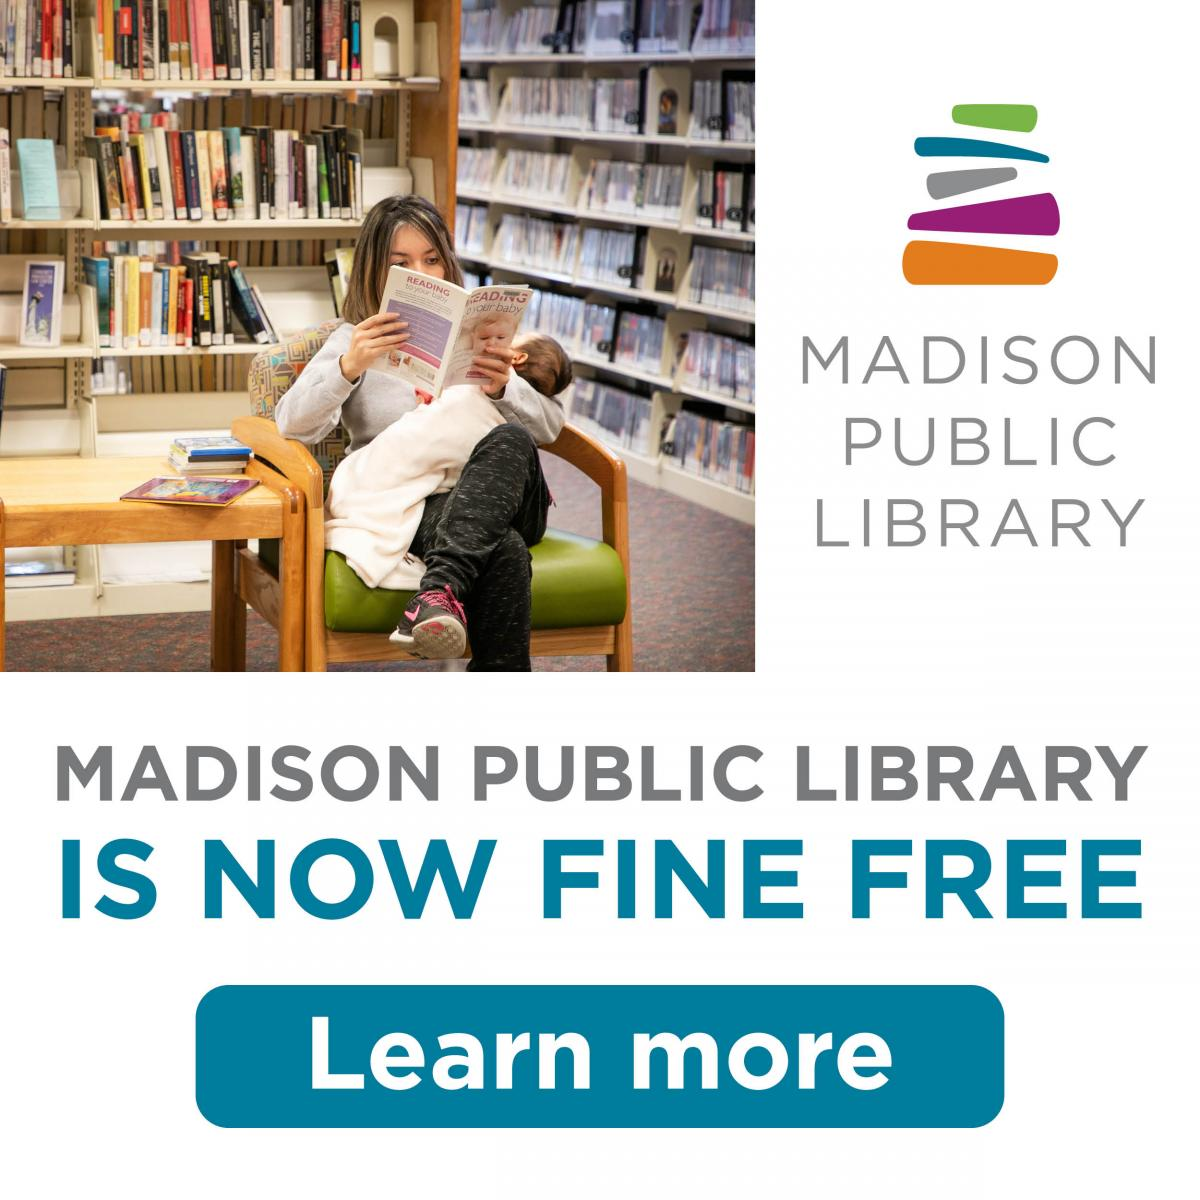 Madison Public Library has made the decision to go Fine Free